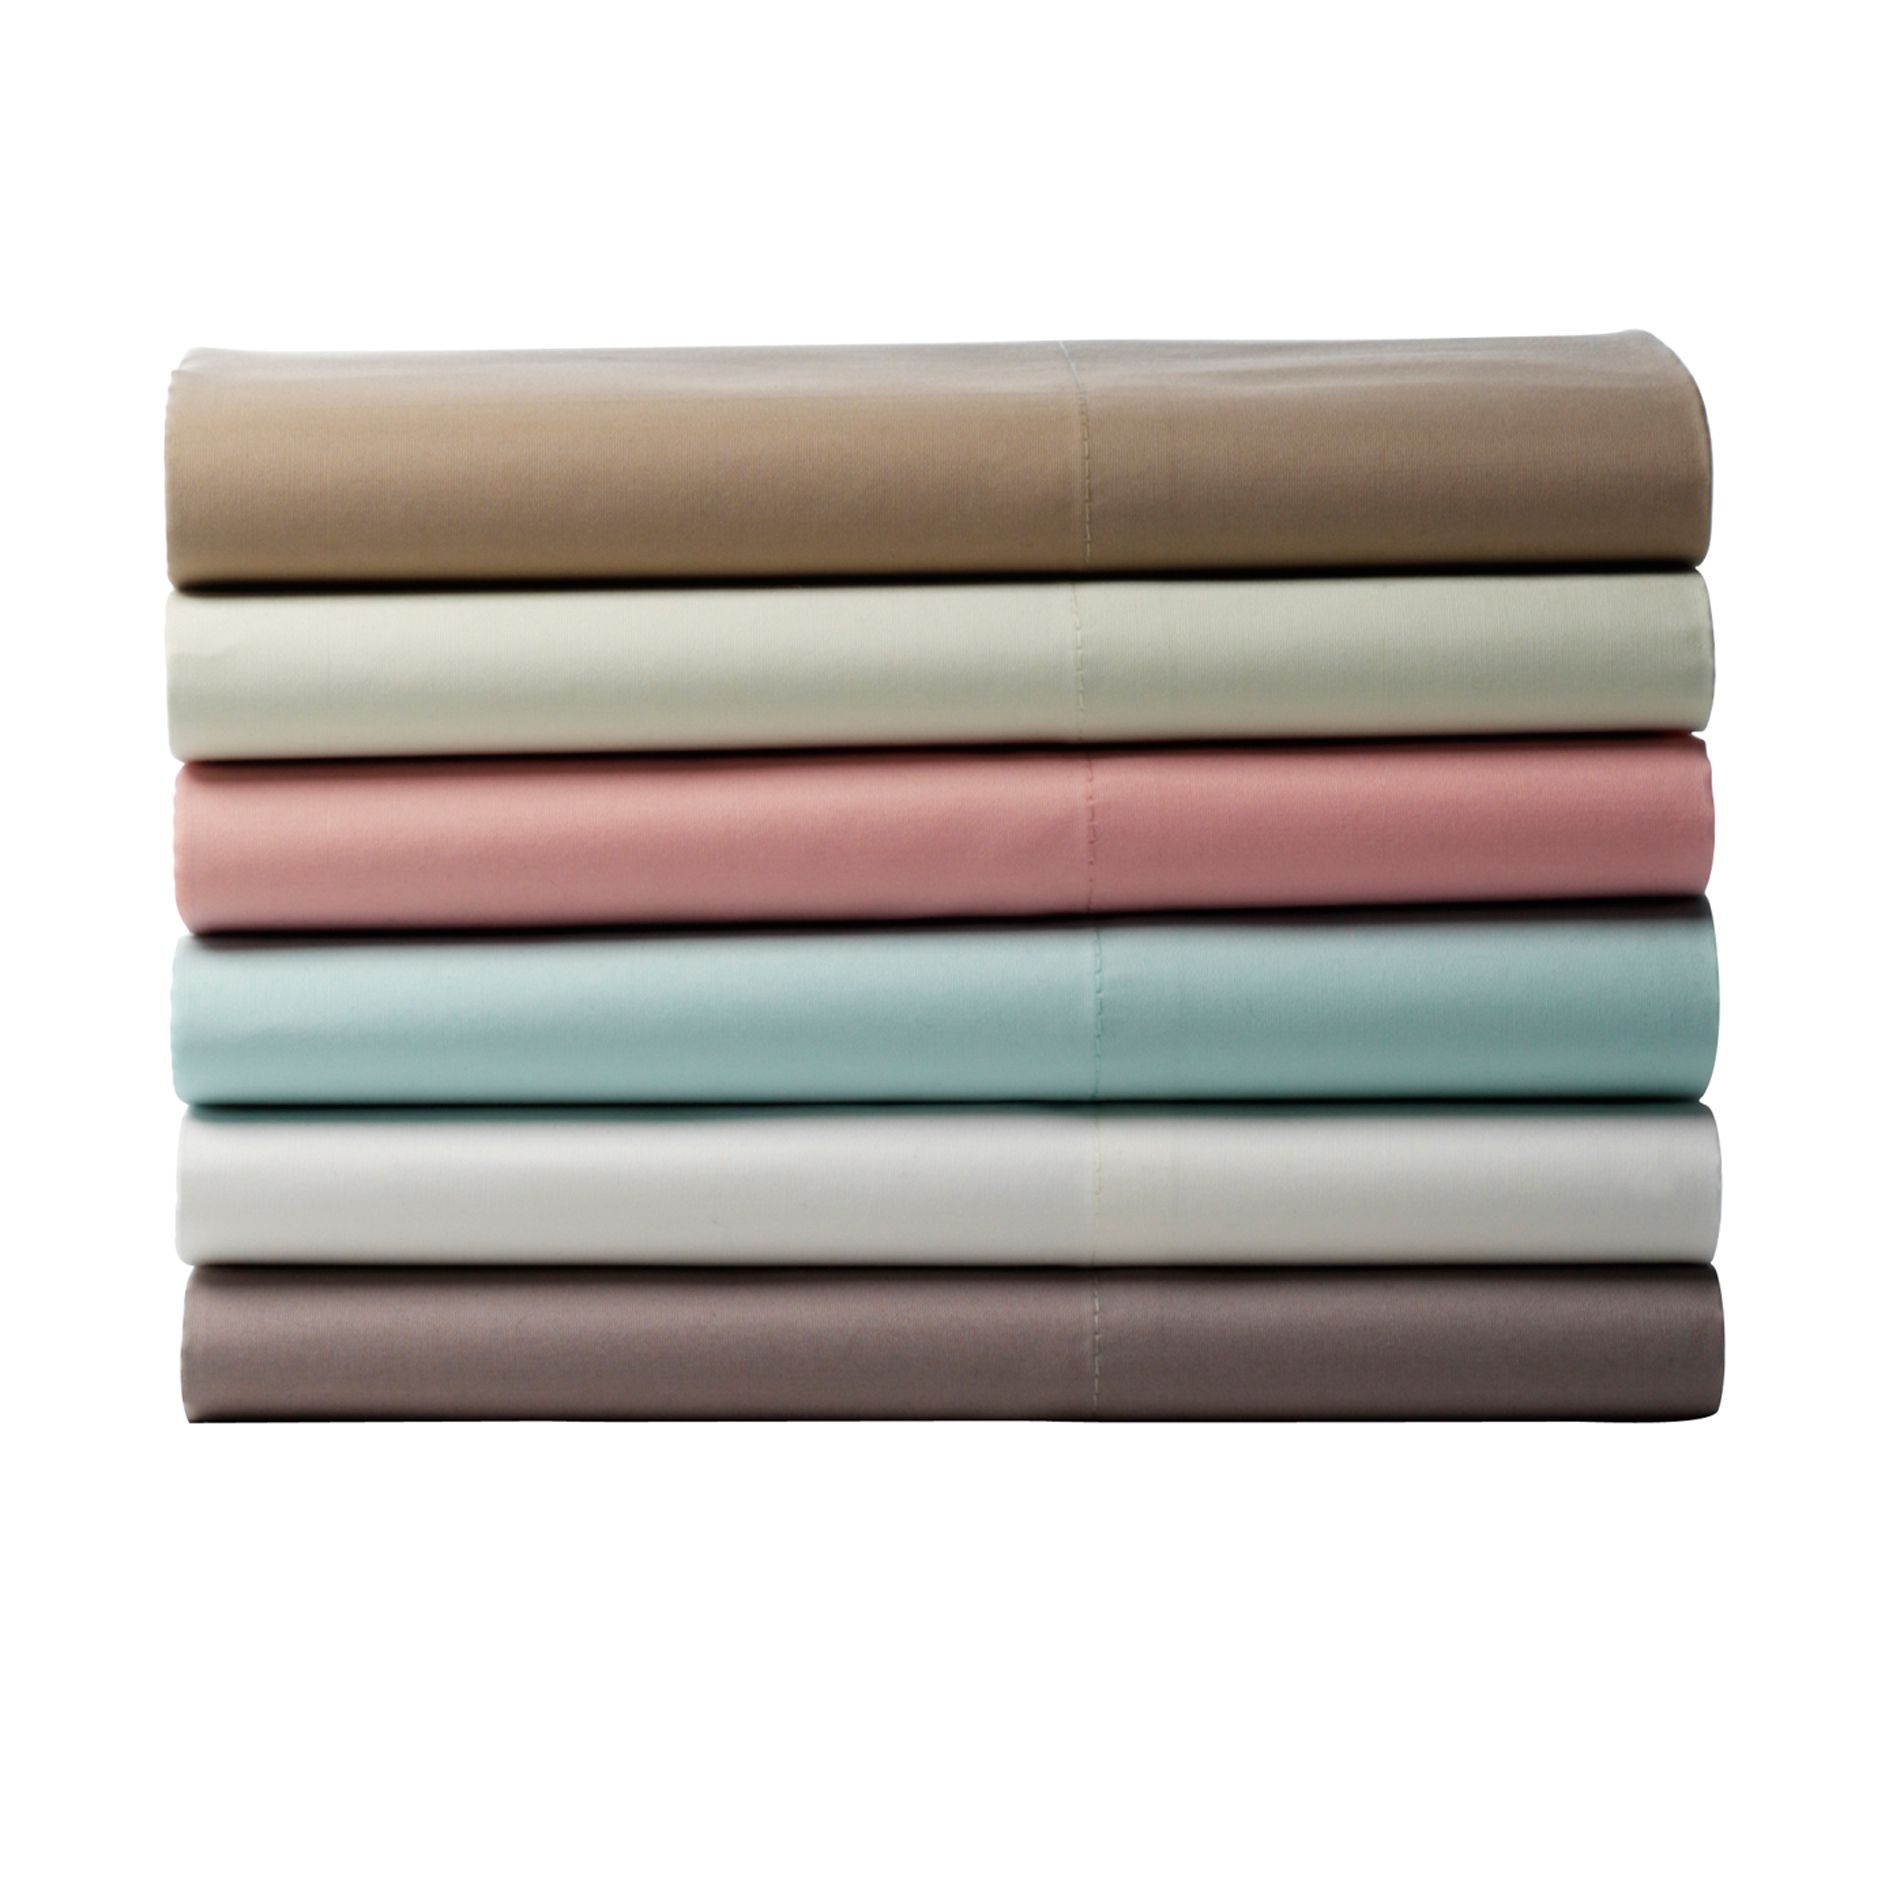 300 Thread Count Wrinkle Free Pillowcase